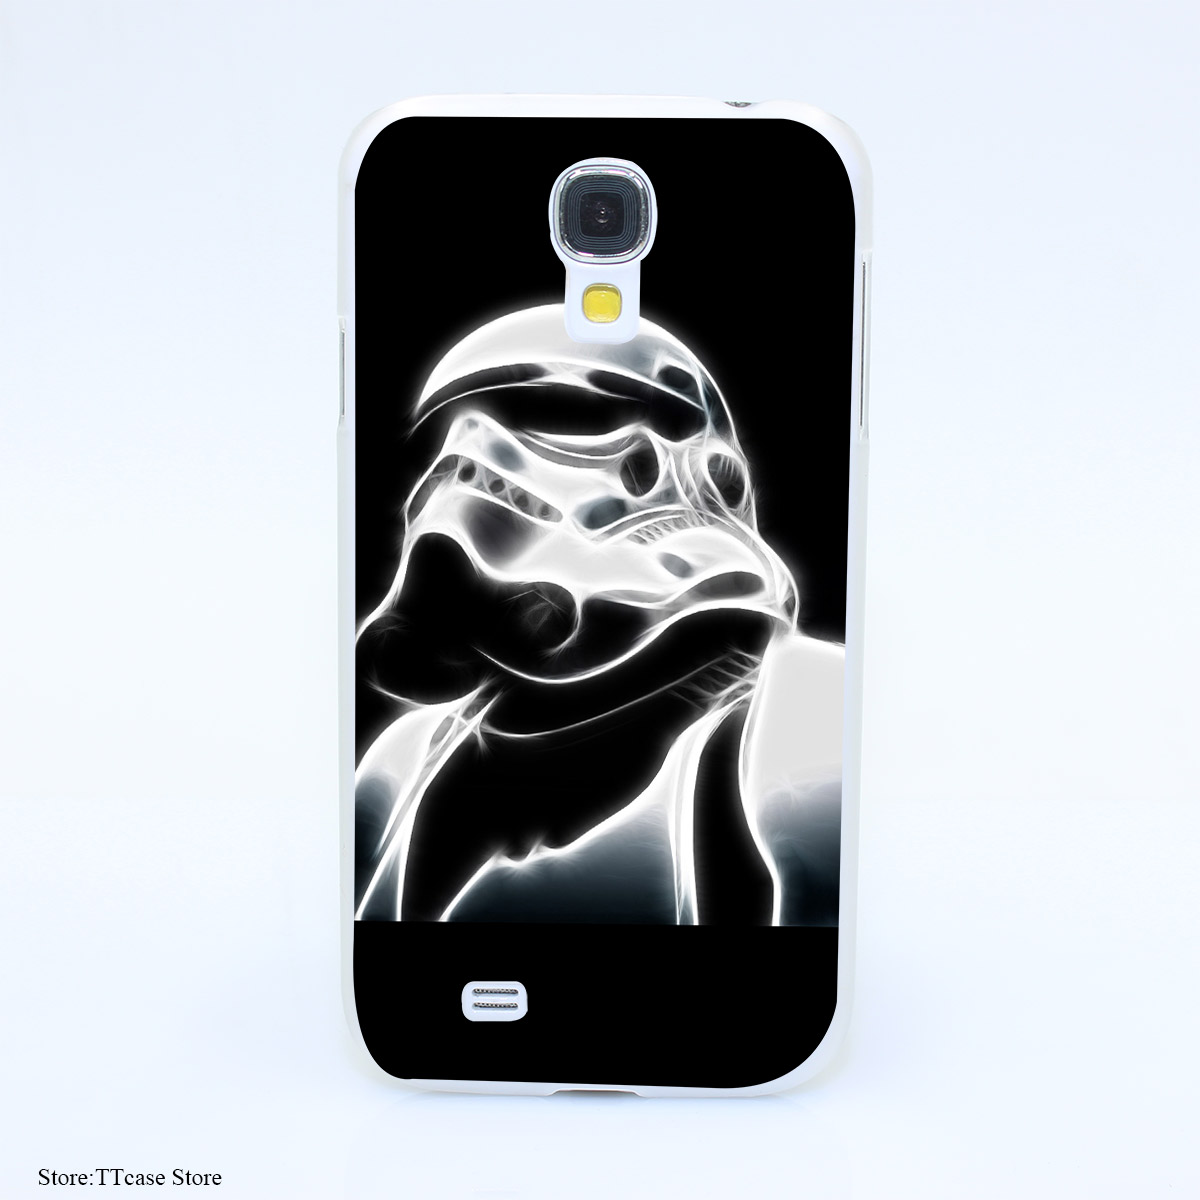 3954CA Vintage Stormtrooper Star Wars Hard Transparent font b Case b font Cover for Galaxy S2